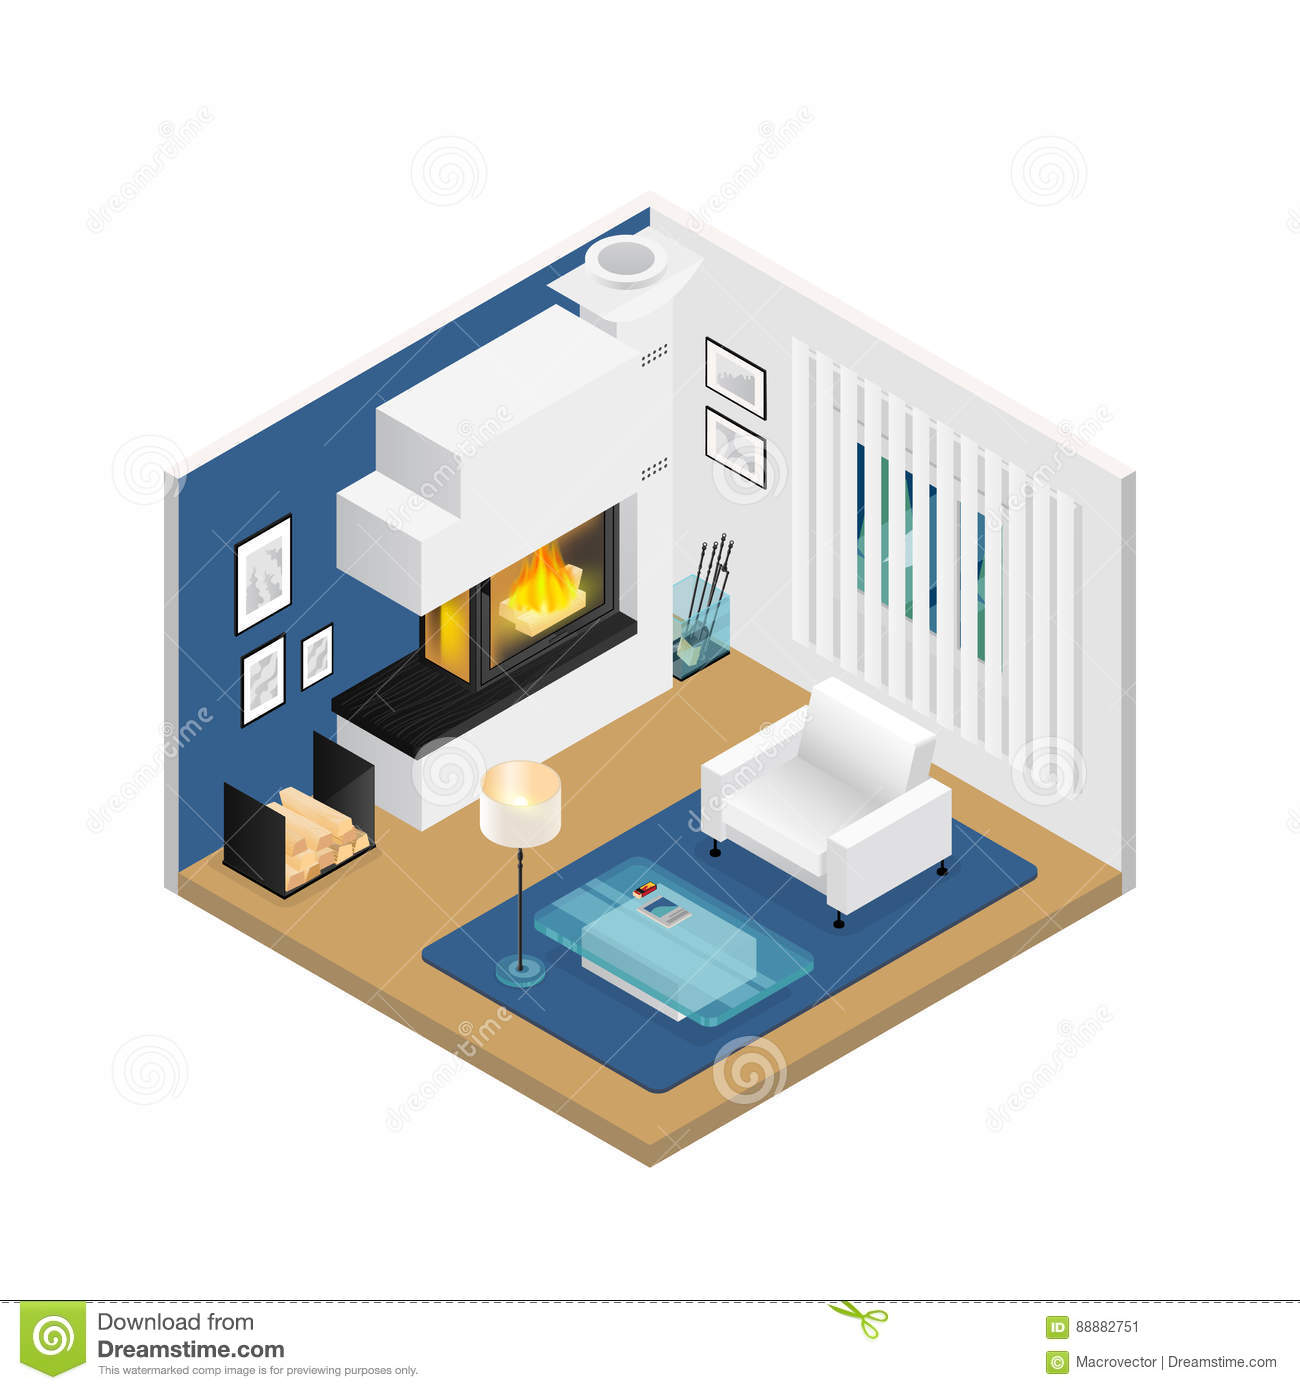 Living room isometric interior with fireplace stock vector for 15x15 living room